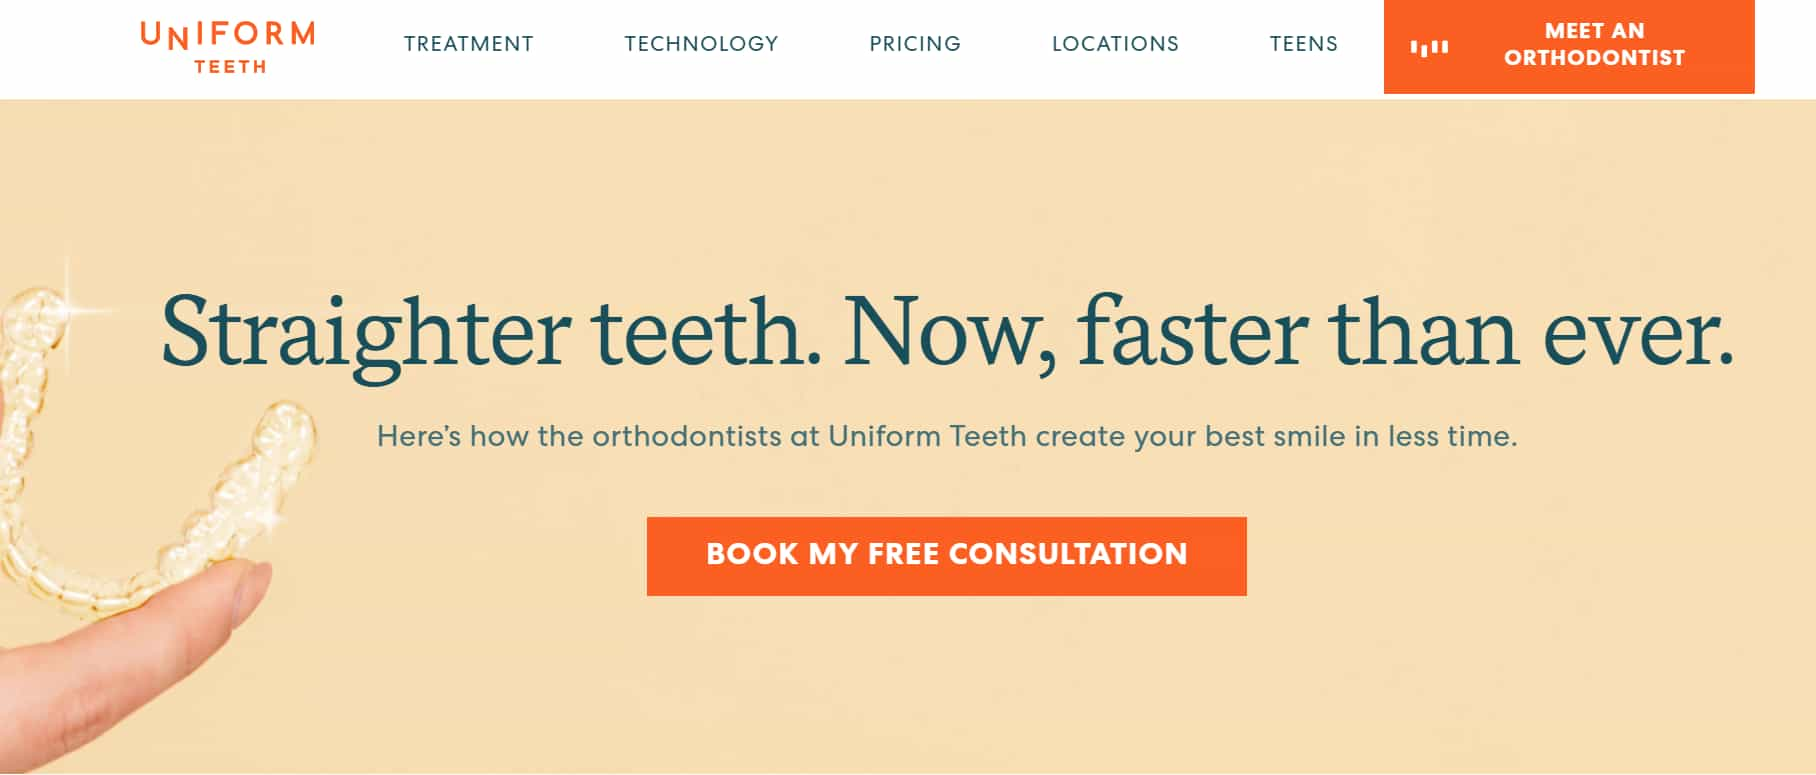 uniform teeth-orthodontic startup